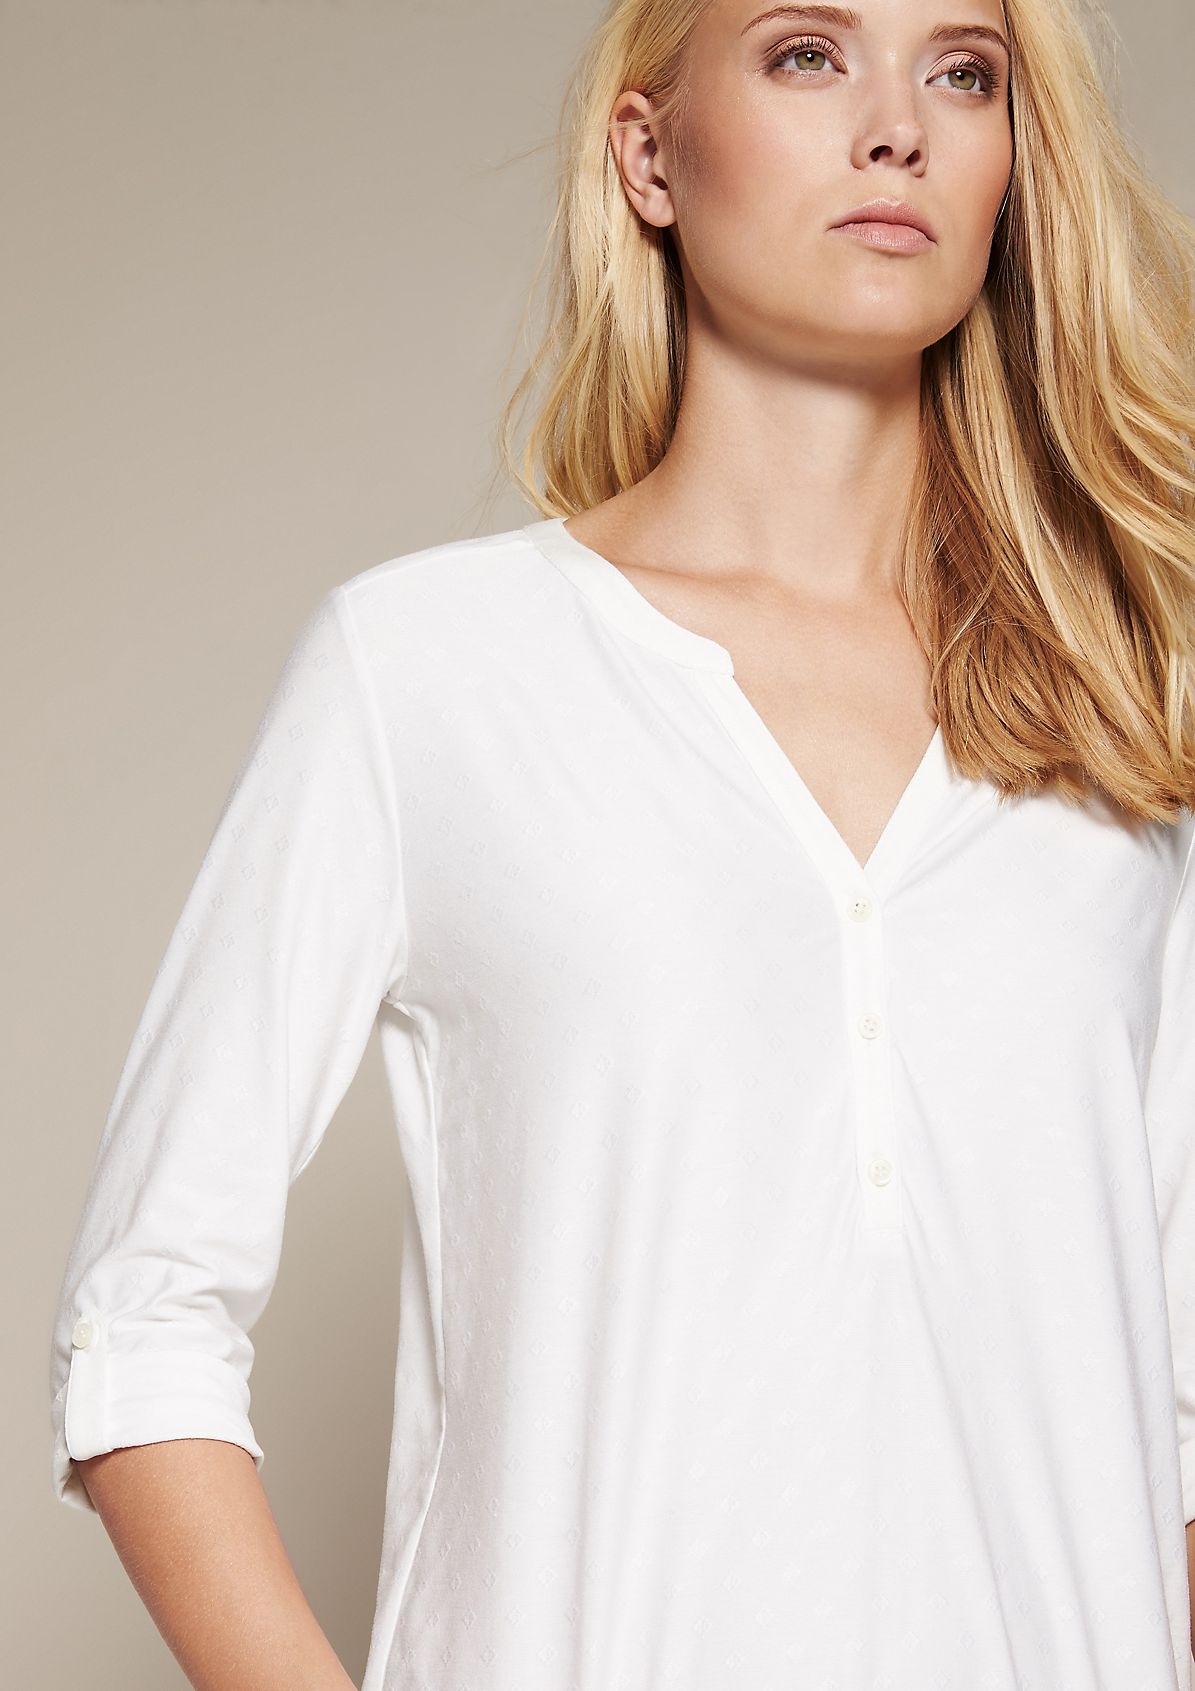 Casual jersey top with a beautiful tone-in-tone pattern and 3/4-length sleeves from s.Oliver